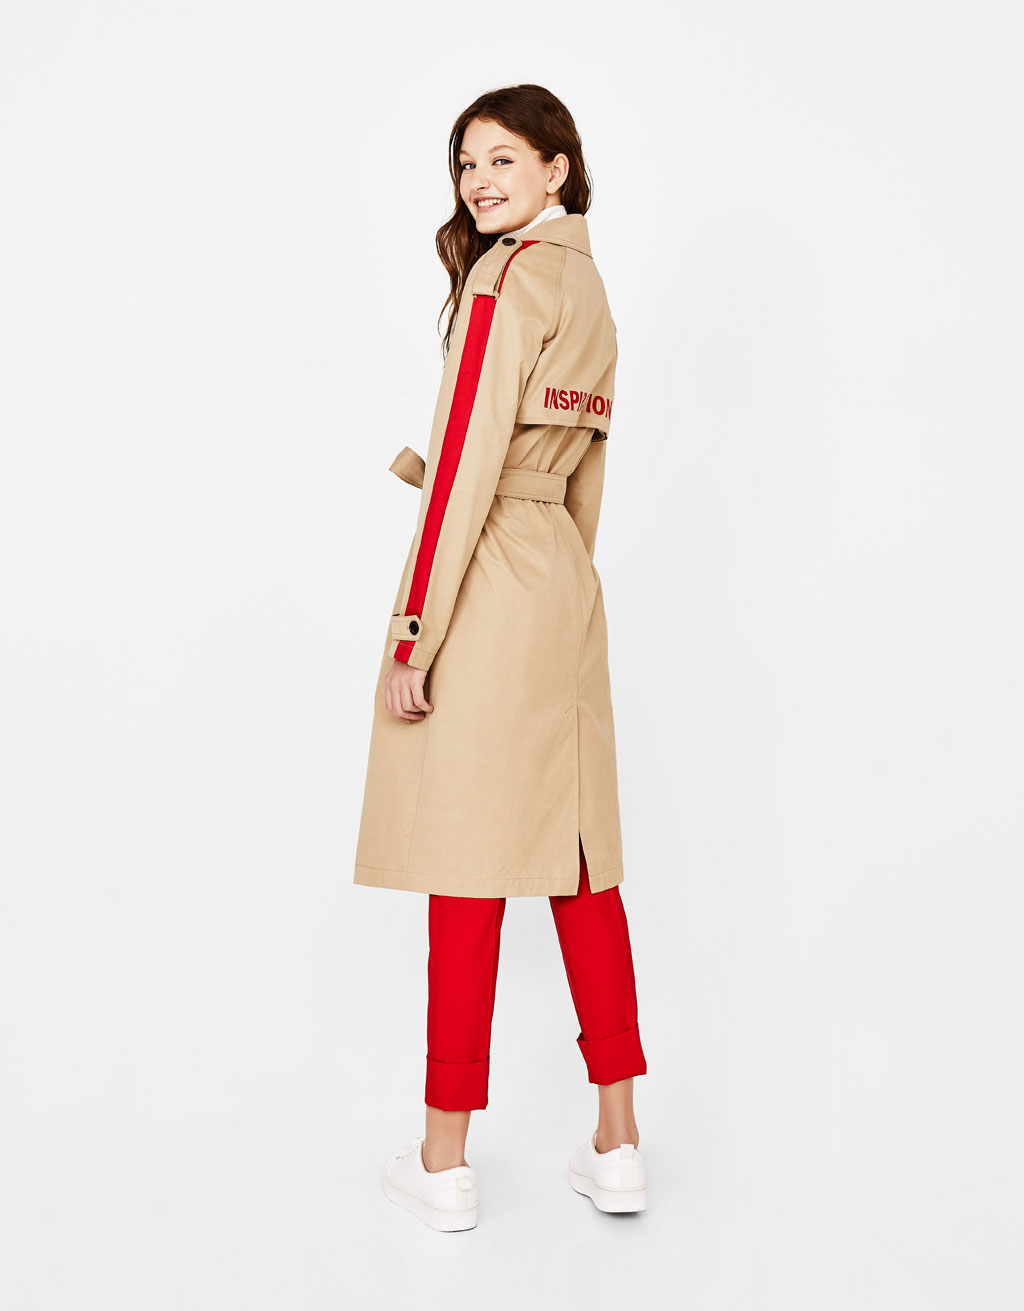 Trench coat with printed slogan